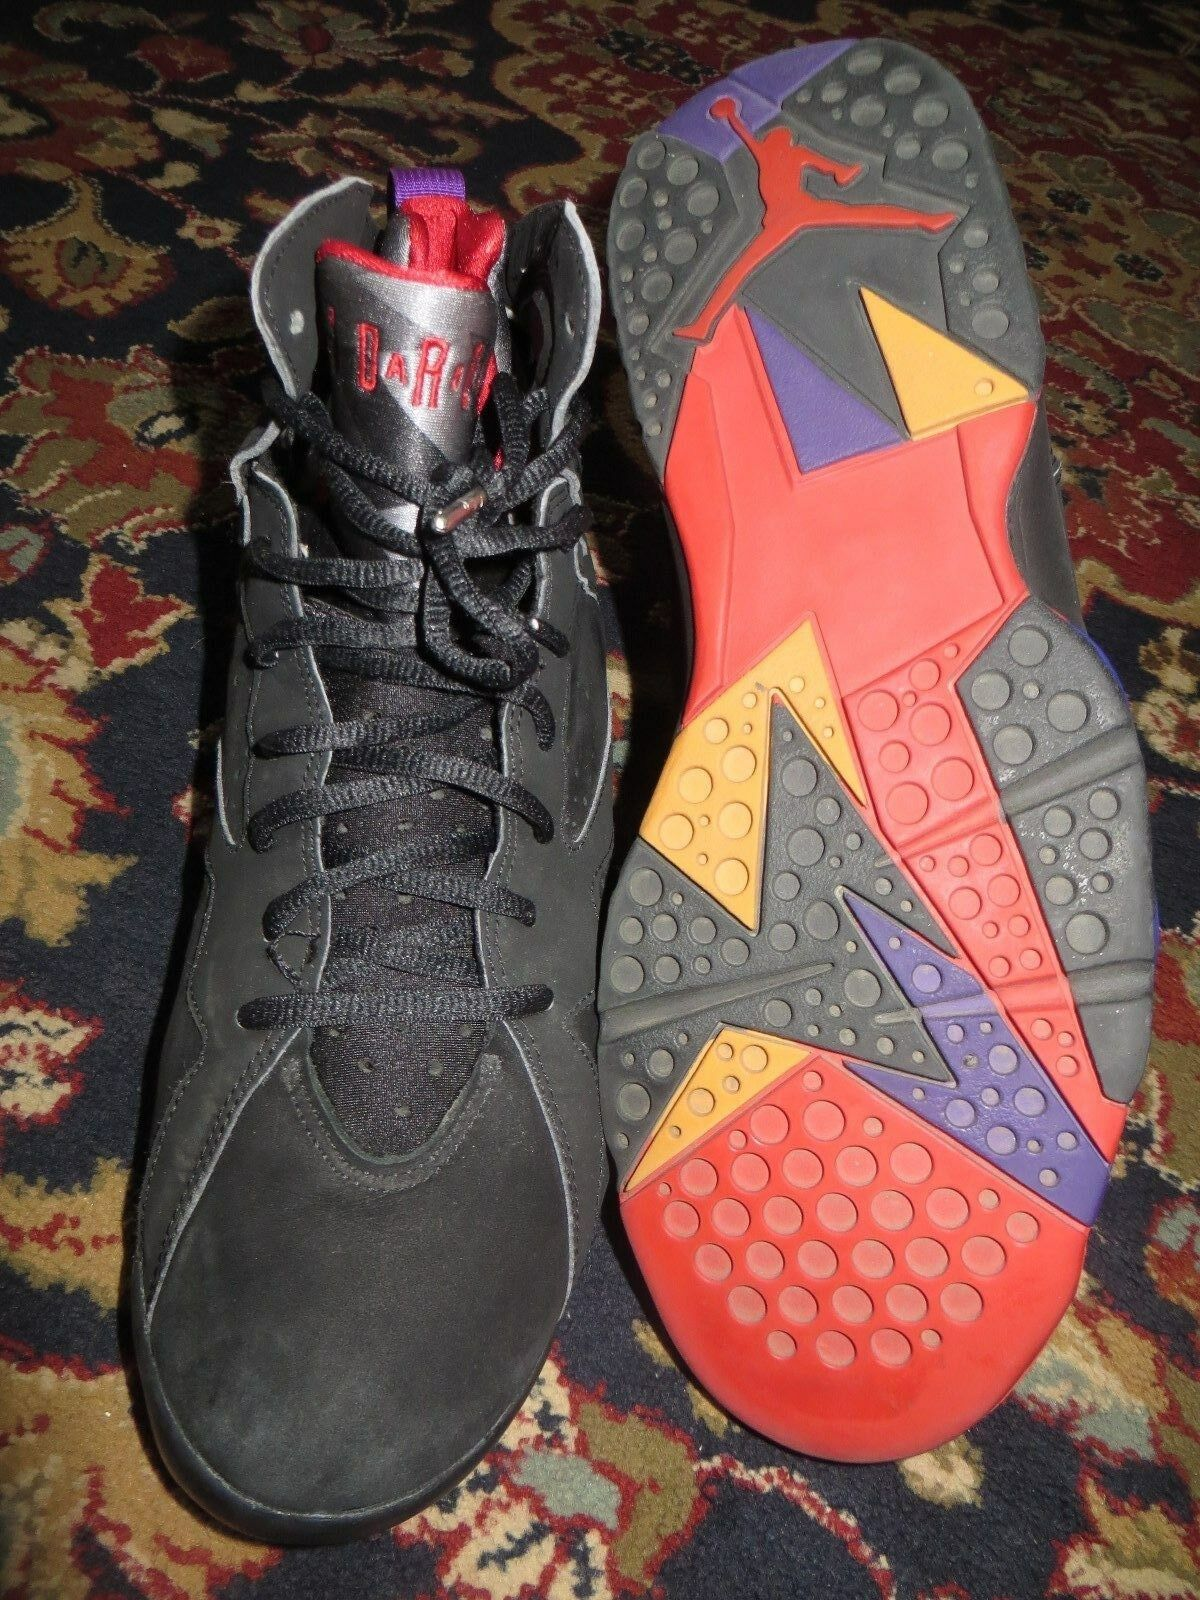 2002 Nike Air Jordan 7 Retro Size 12 Raptor Black Red Purple Bred OG 304775-006